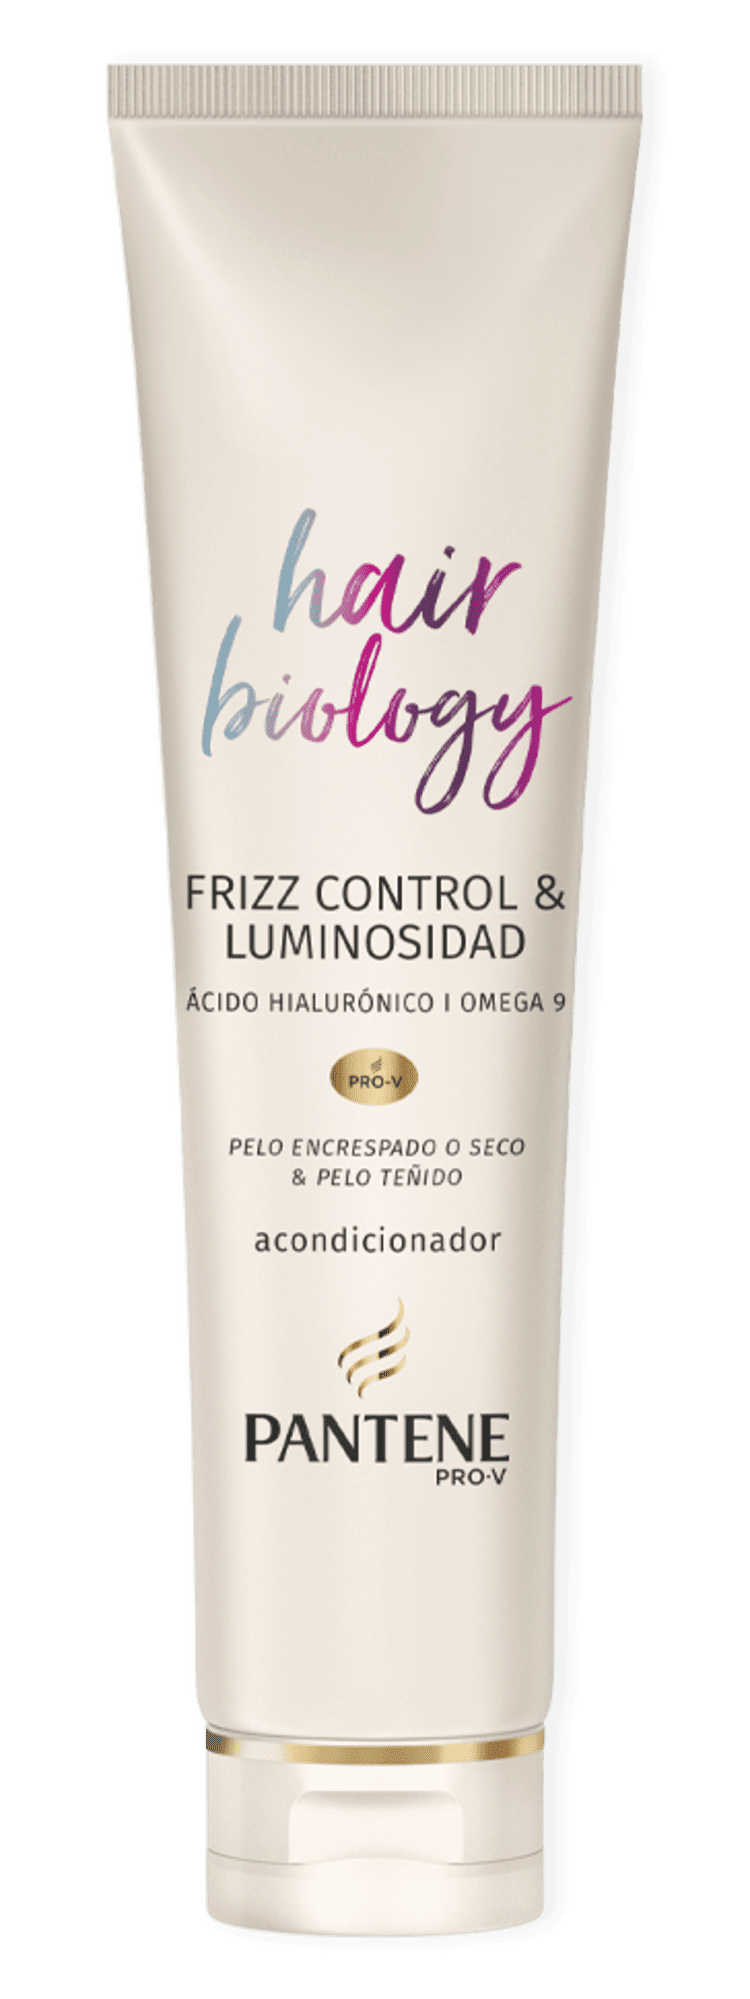 Acondicionador Frizz control y Luminosidad Hair Biology